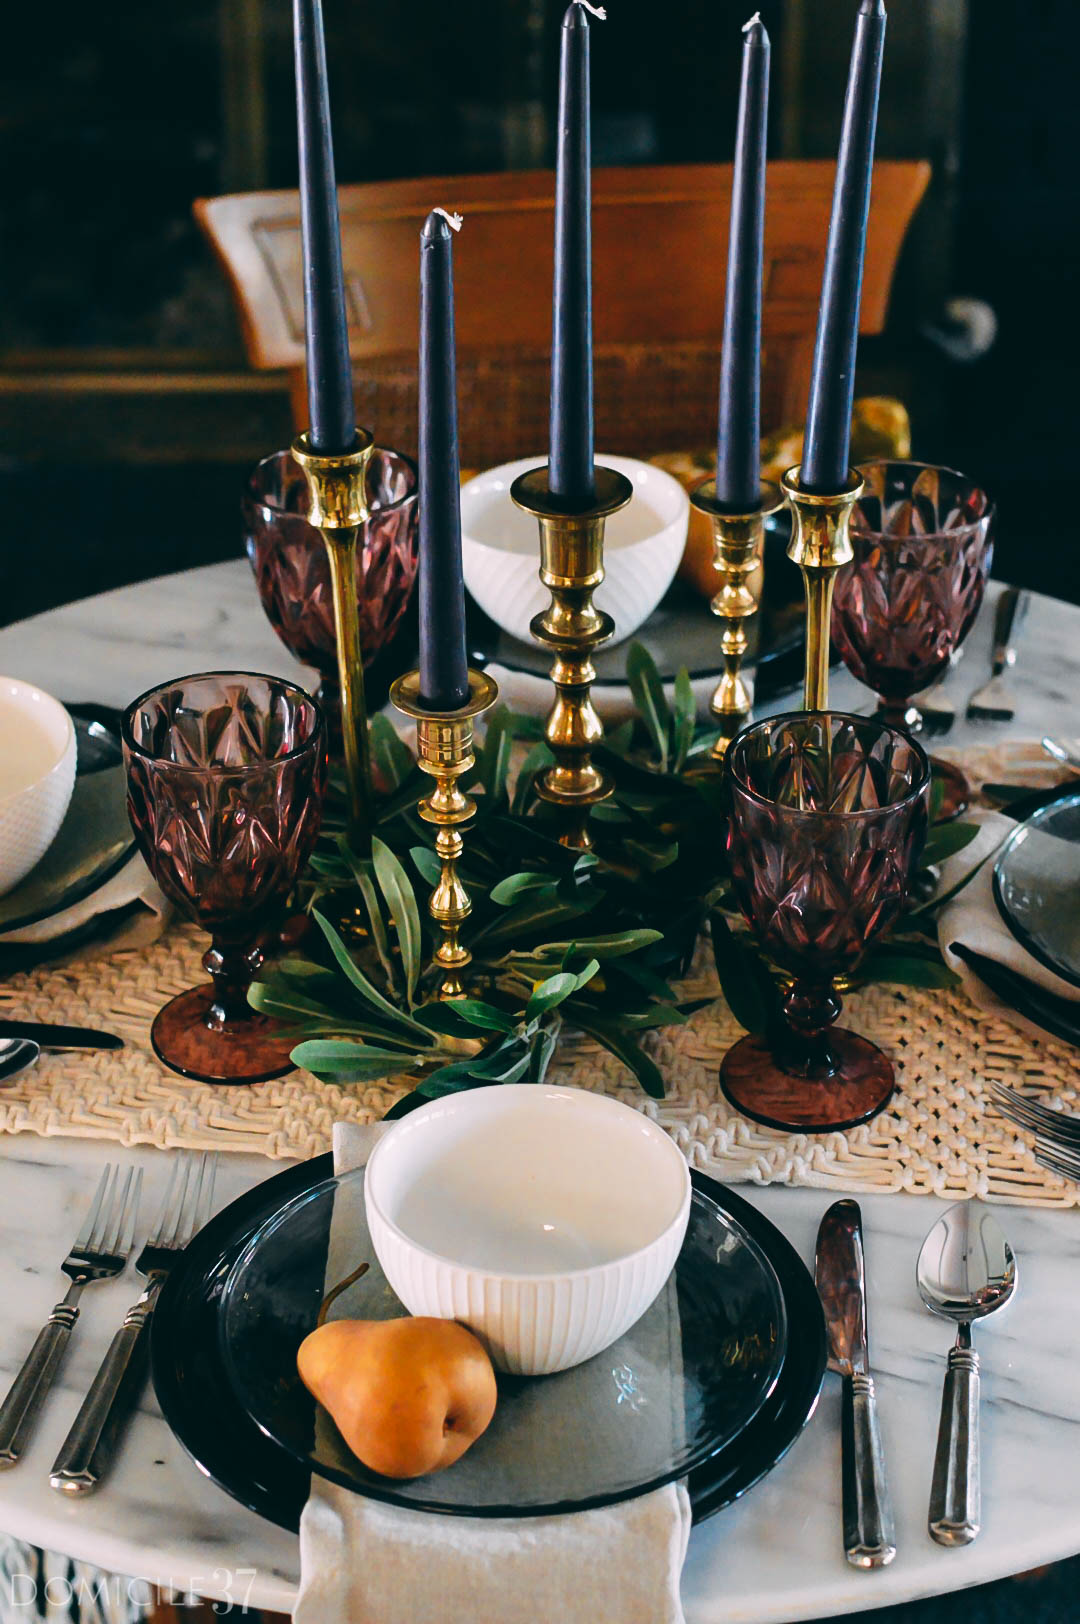 World Market Fall Tablescape Ideas | Moody Fall tablescape | Mix and Match tablescape | vintage candlesticks | Black candles | Eclectic tablescapes